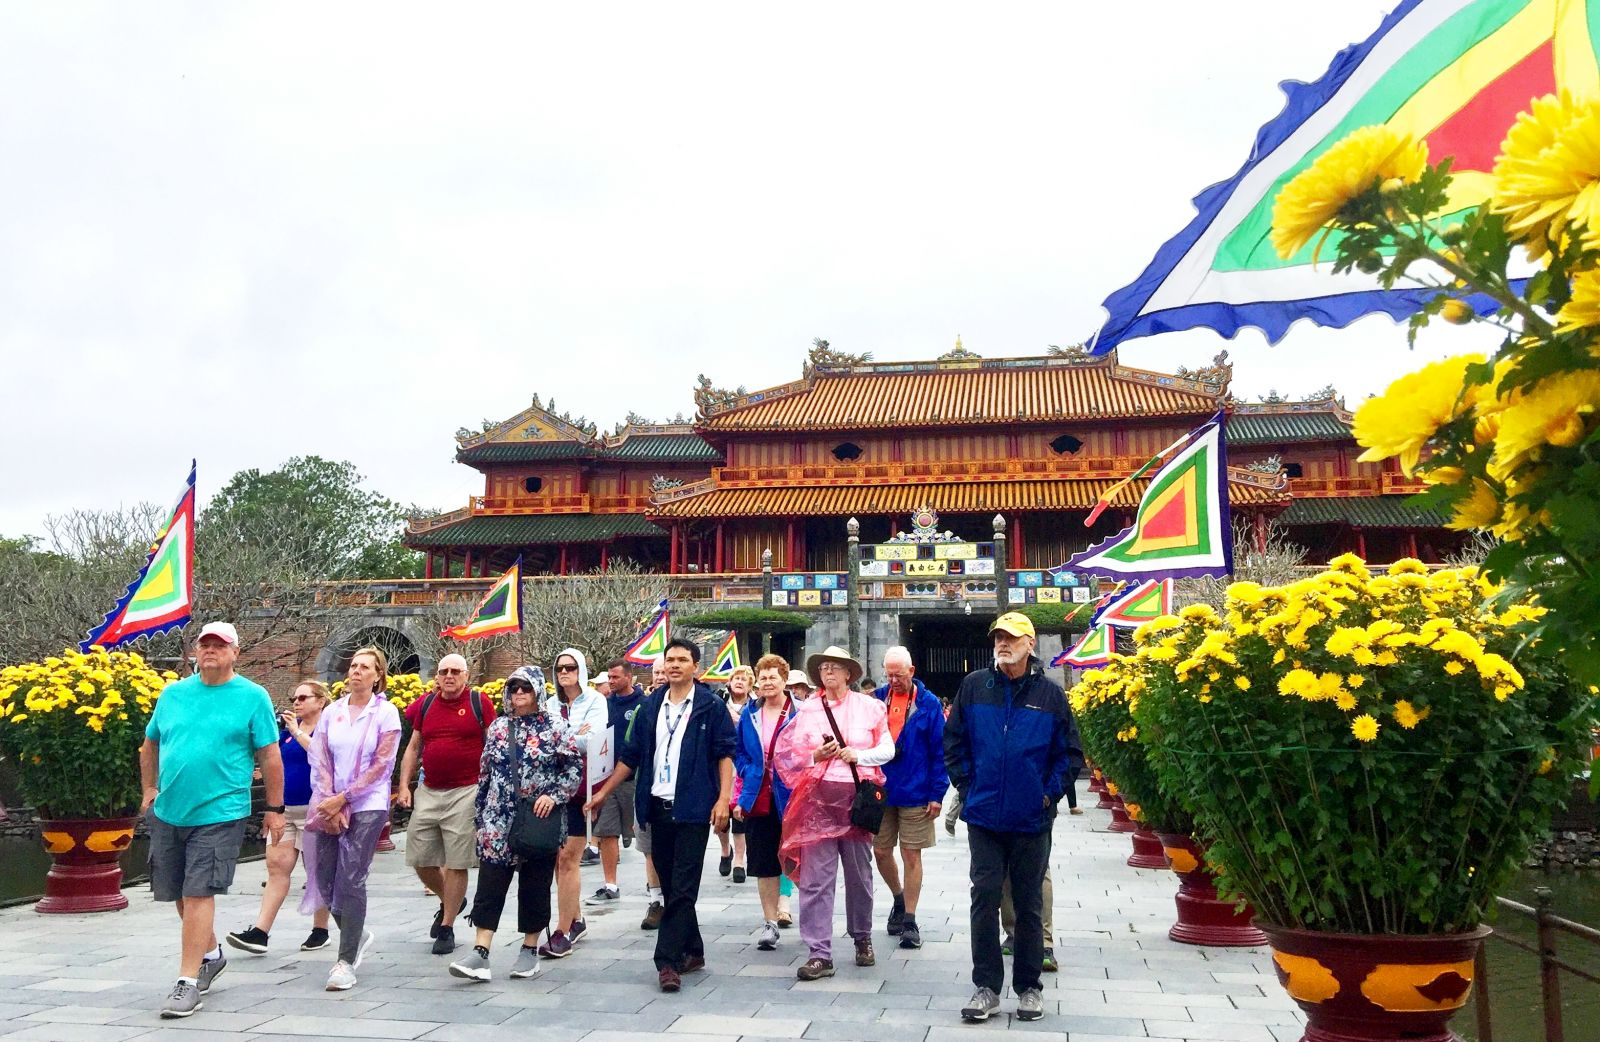 Tourists coming to Thai Hoa palace in a winter day to enjoy the